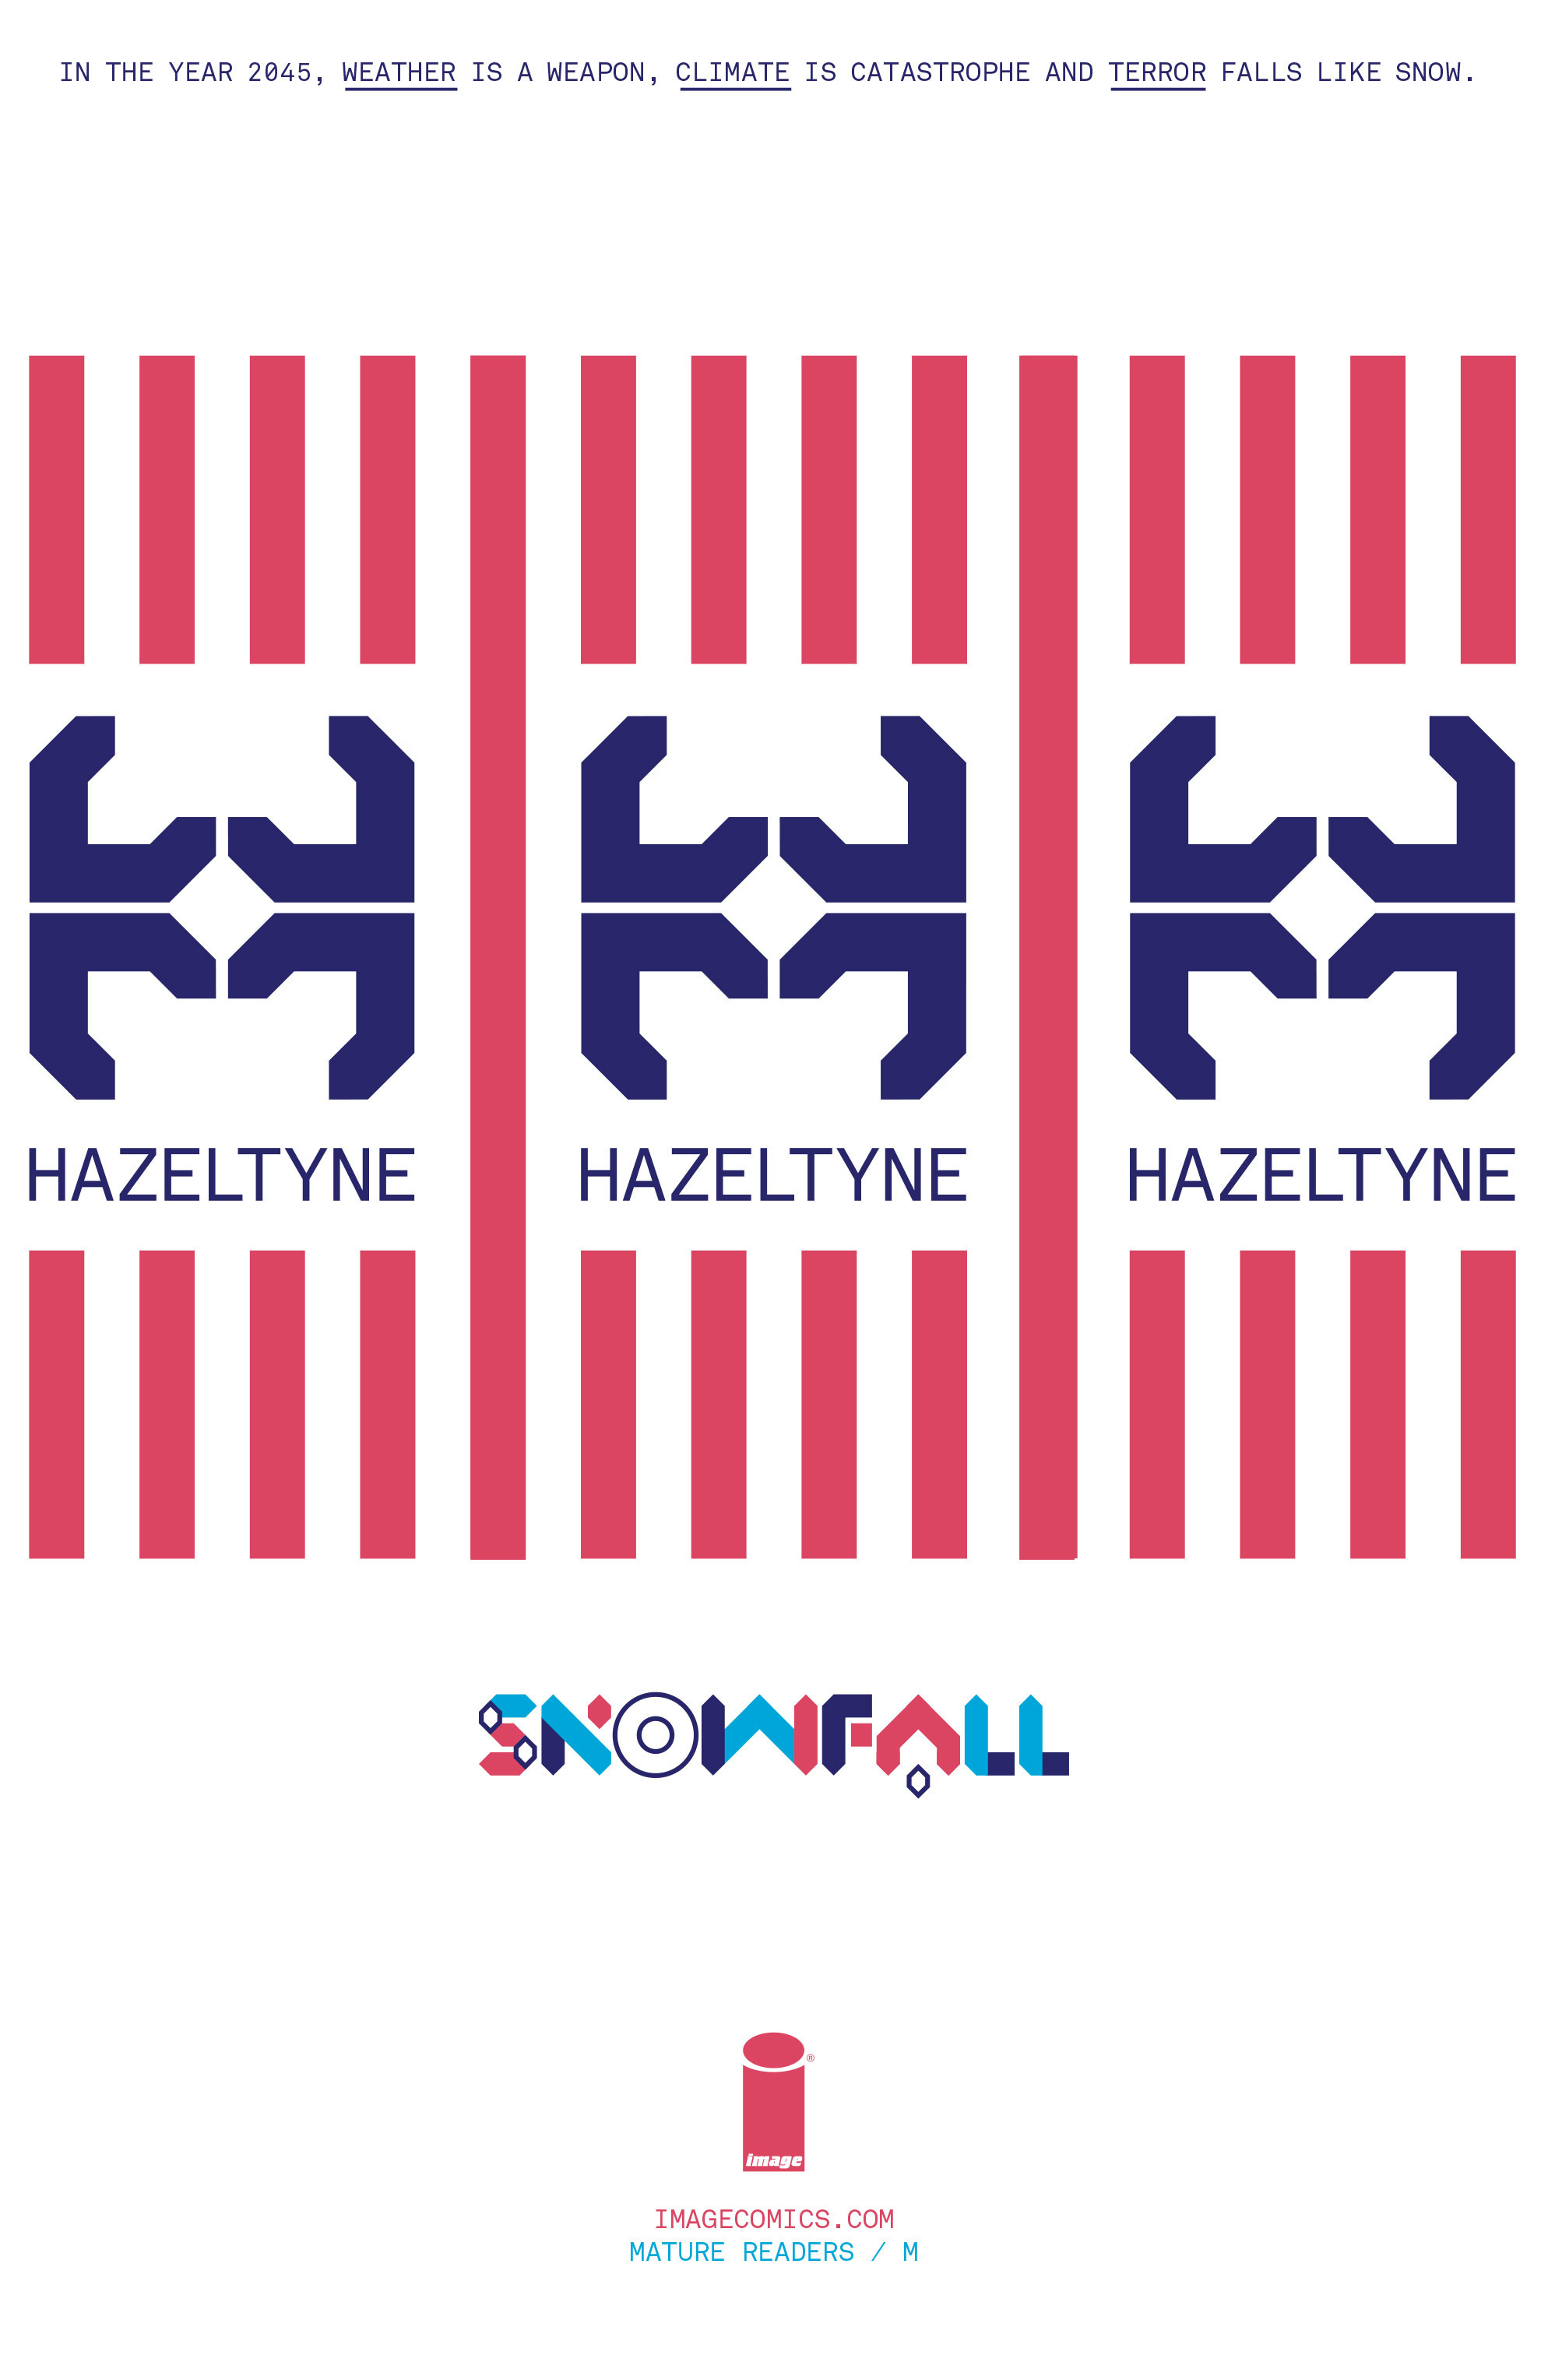 Read online Snowfall comic -  Issue #4 - 32